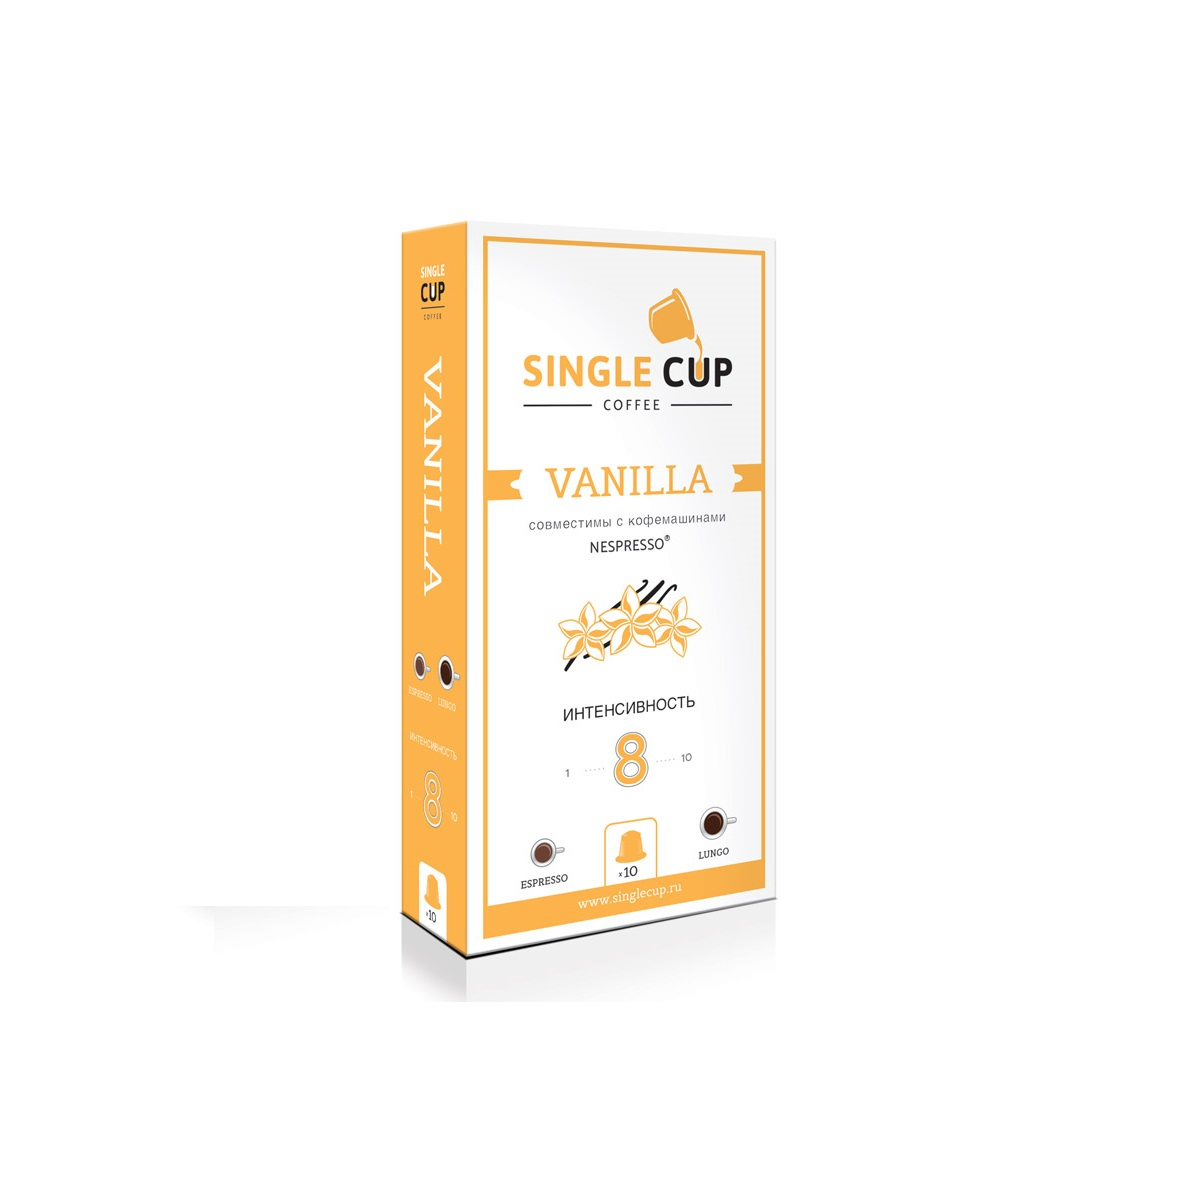 Кофе в капсулах Single Cup Coffee Vanilla, 55 г труба фановая ани пласт w4228 белая 110 45 0501 349